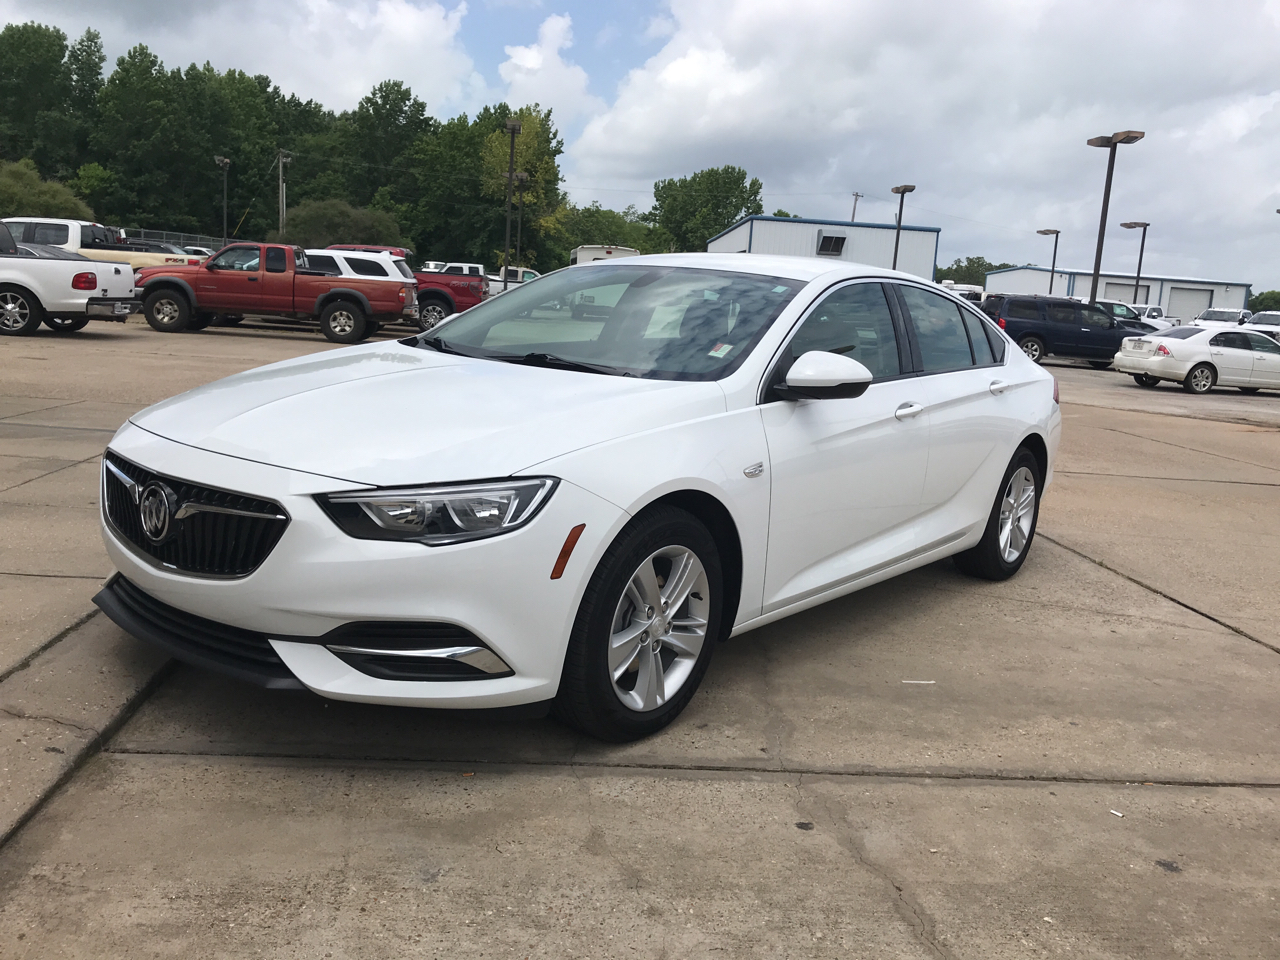 2018 Buick Regal 4dr Sdn Custom